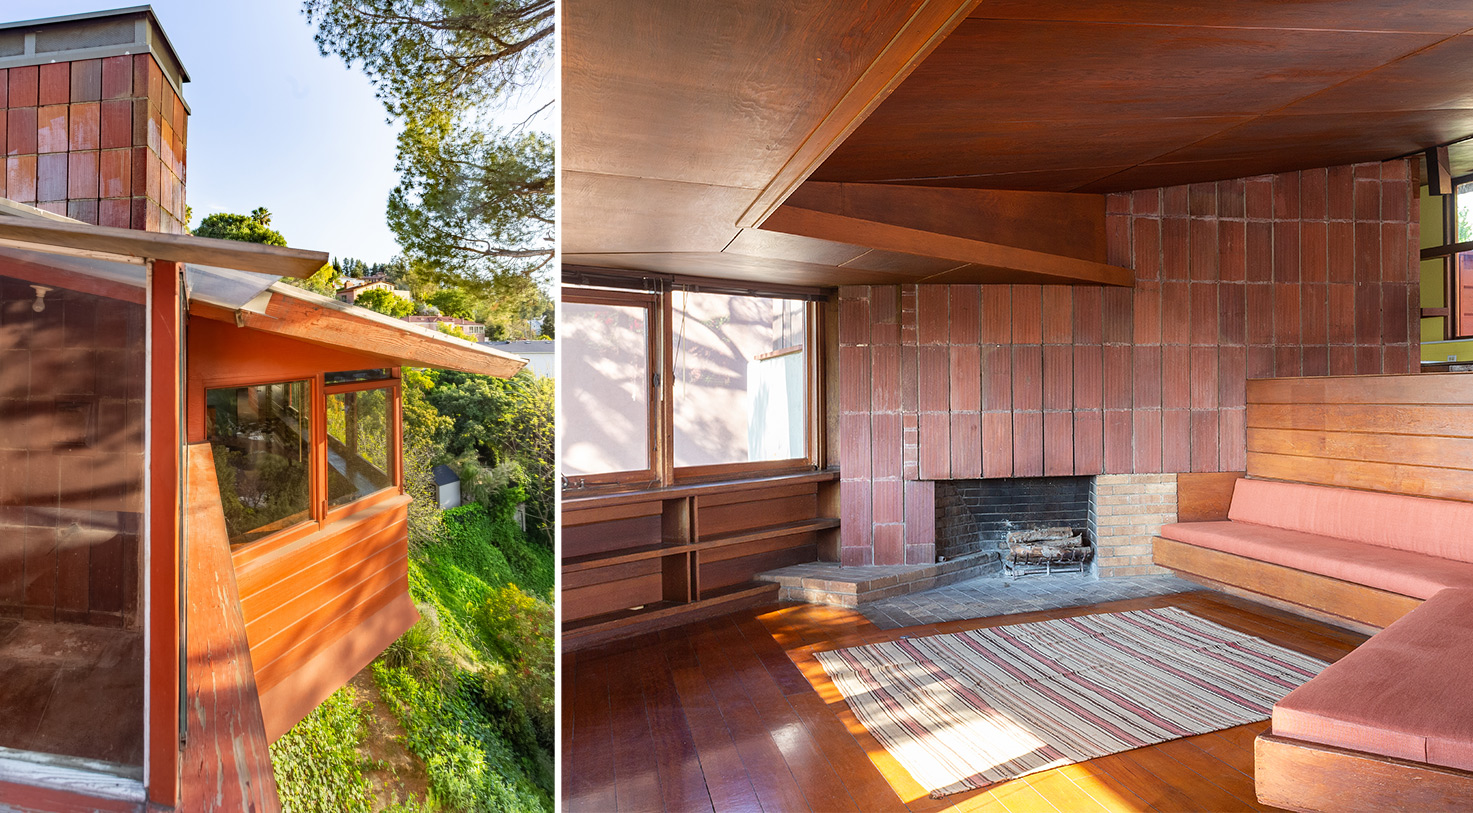 Architectural Digest: John Lautner's Former Home Hits the Market